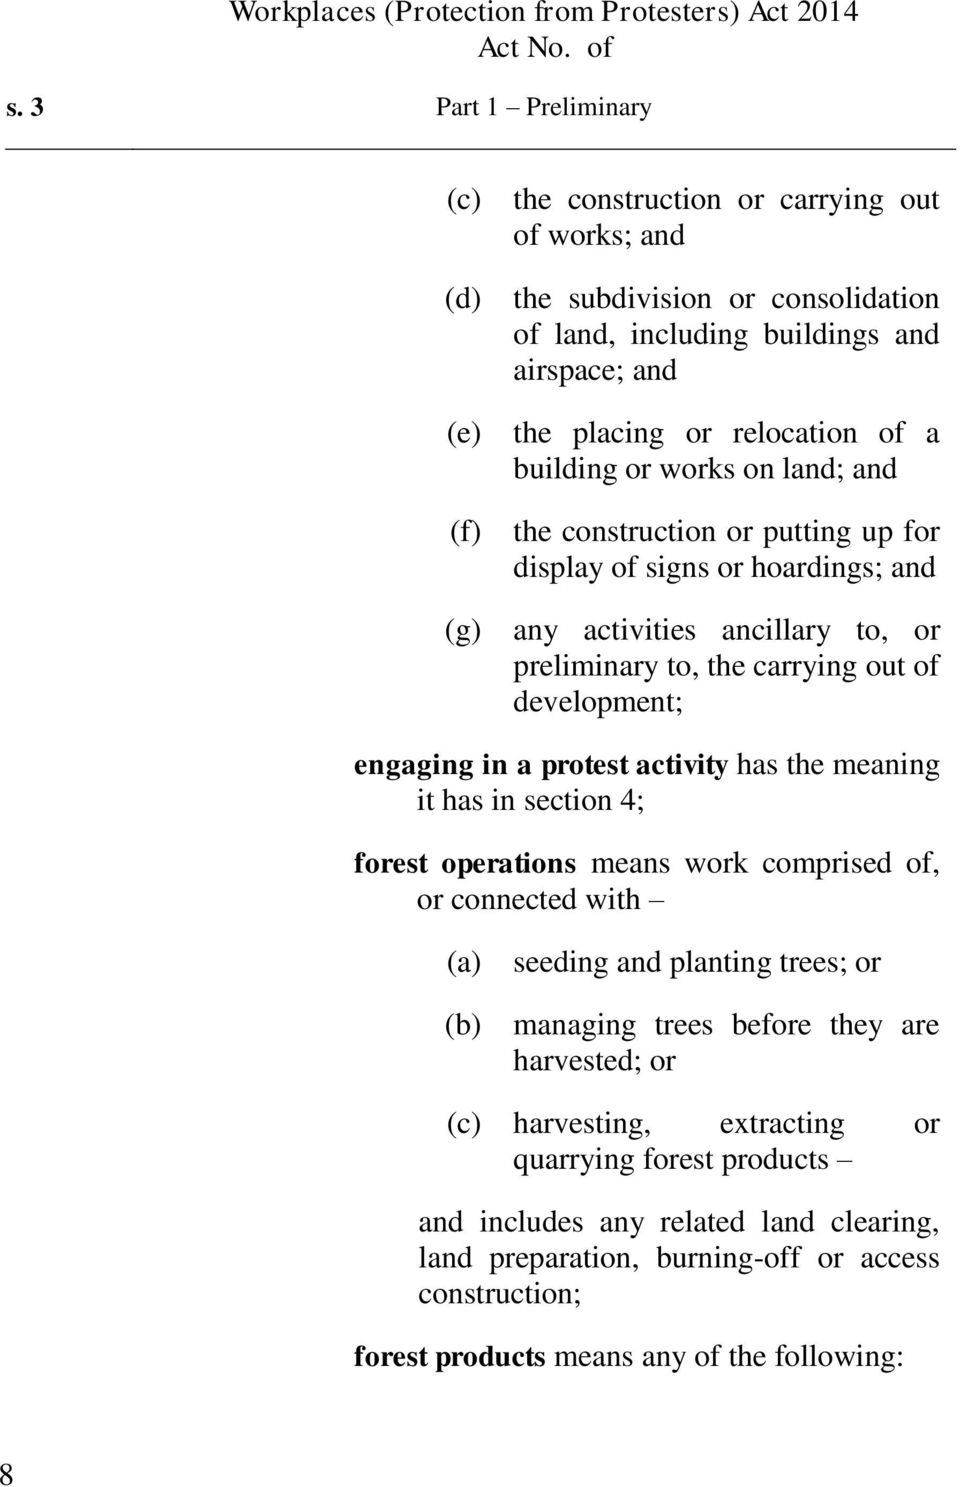 development; engaging in a protest activity has the meaning it has in section 4; forest operations means work comprised of, or connected with seeding and planting trees; or managing trees before